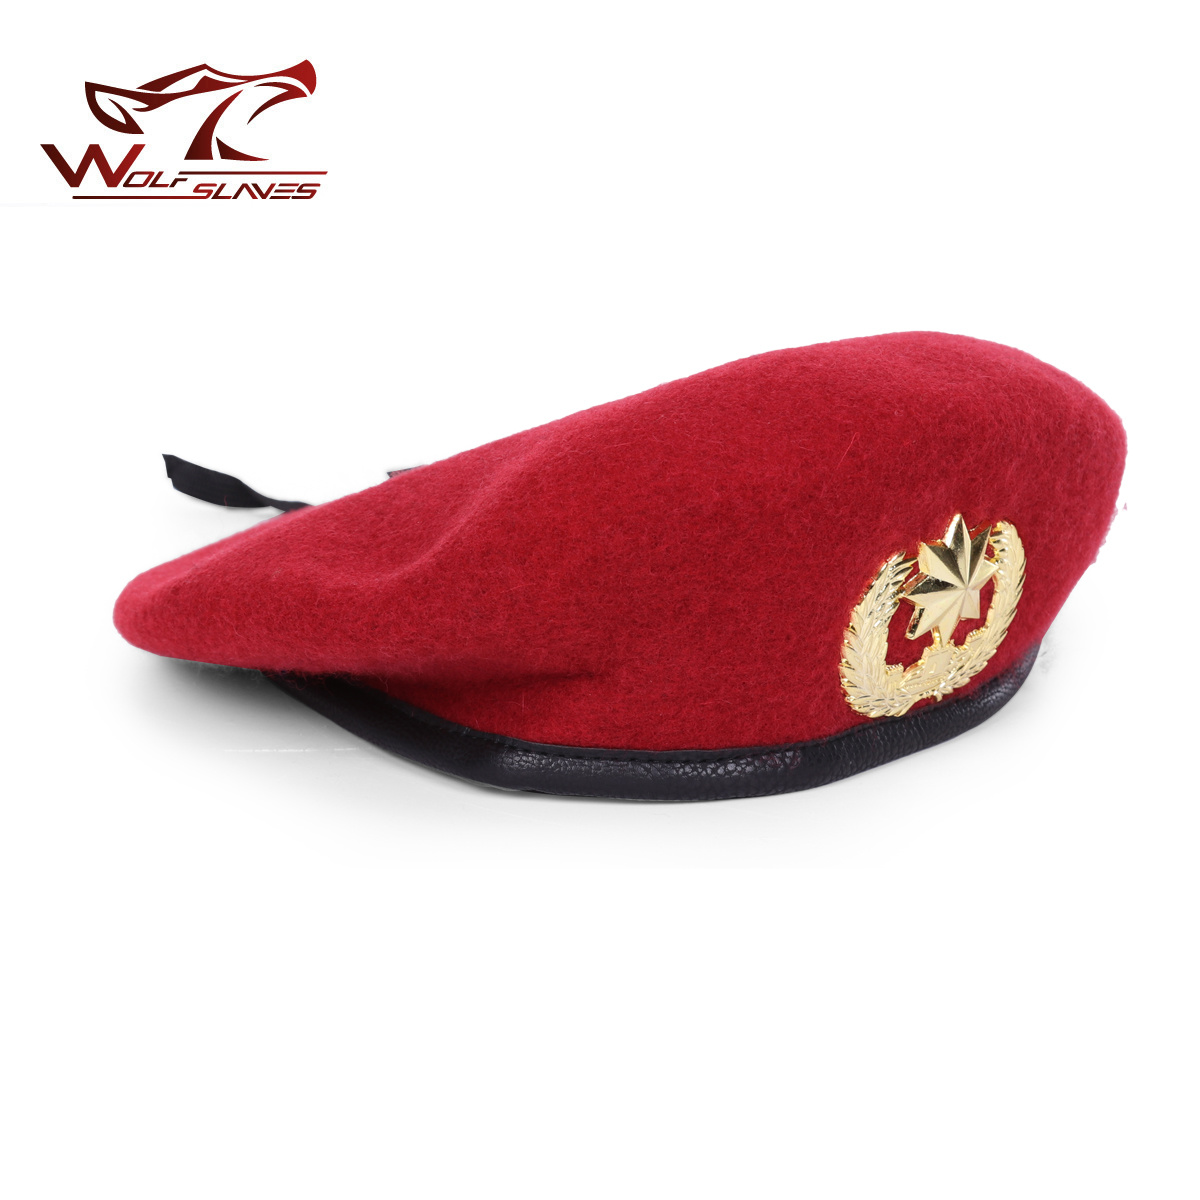 afa6ab7fcc402 Top Quality Wool Special Forces Military Berets Caps Mens Army Woolen  Beanies Outdoor Breathable Soldier Training Boinas Military with Badge